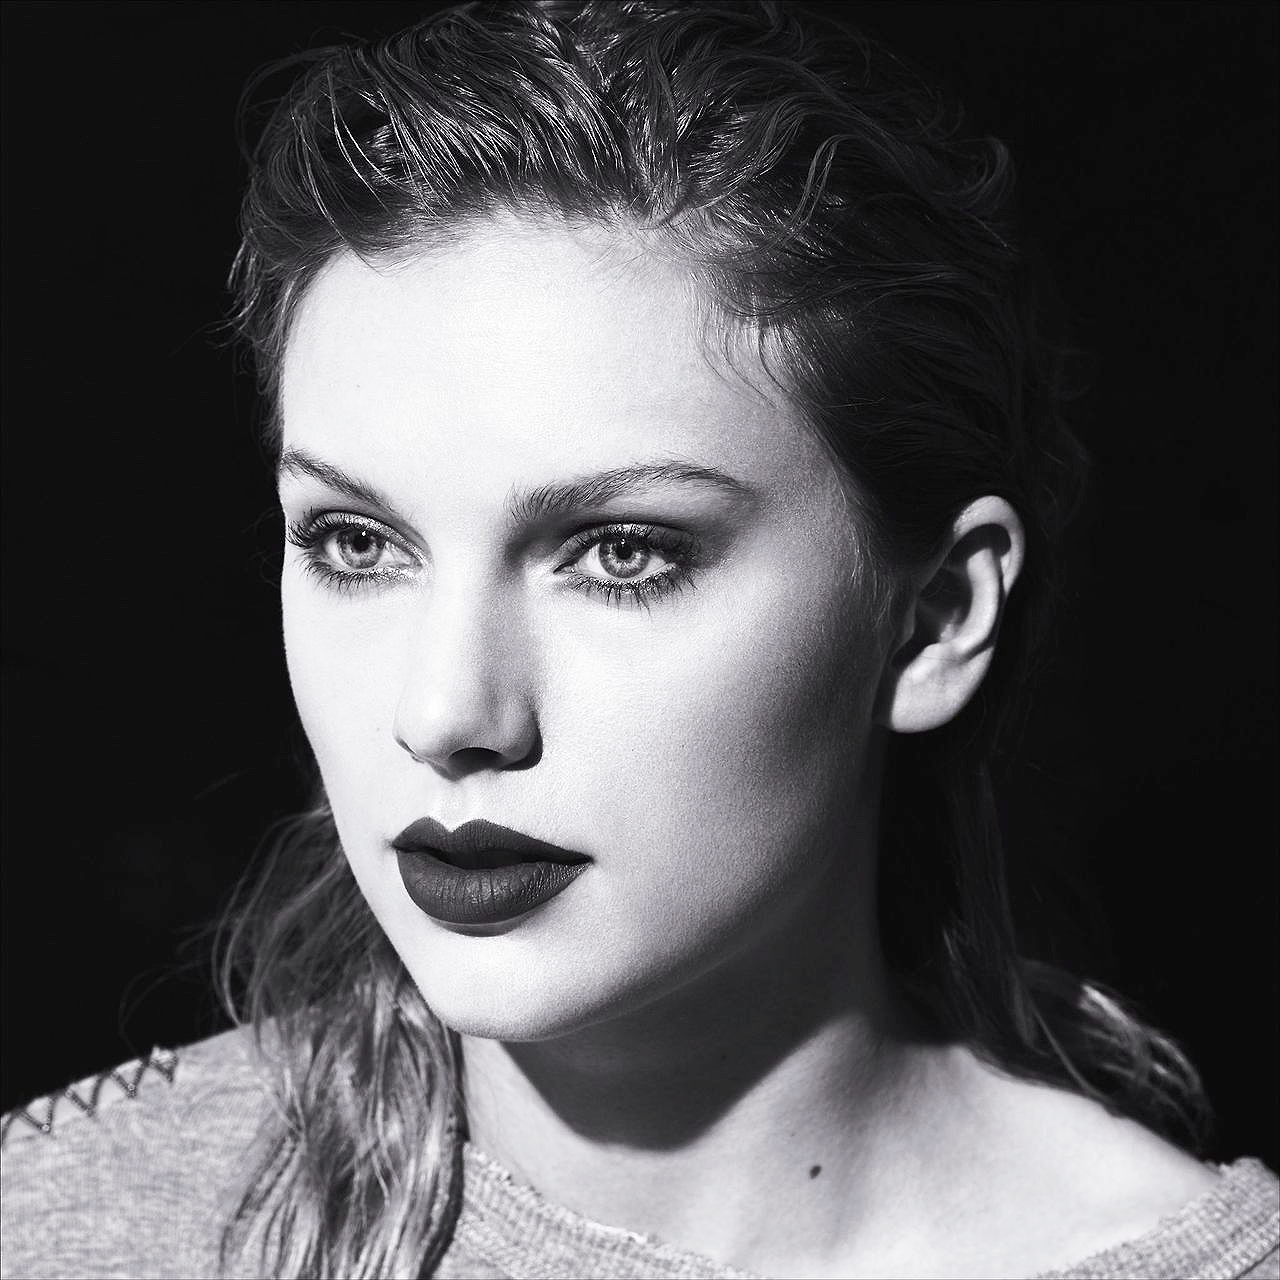 Taylor-Swift-Proves-She-Is-The-Artist-Of-A-Generation-With-Reputation